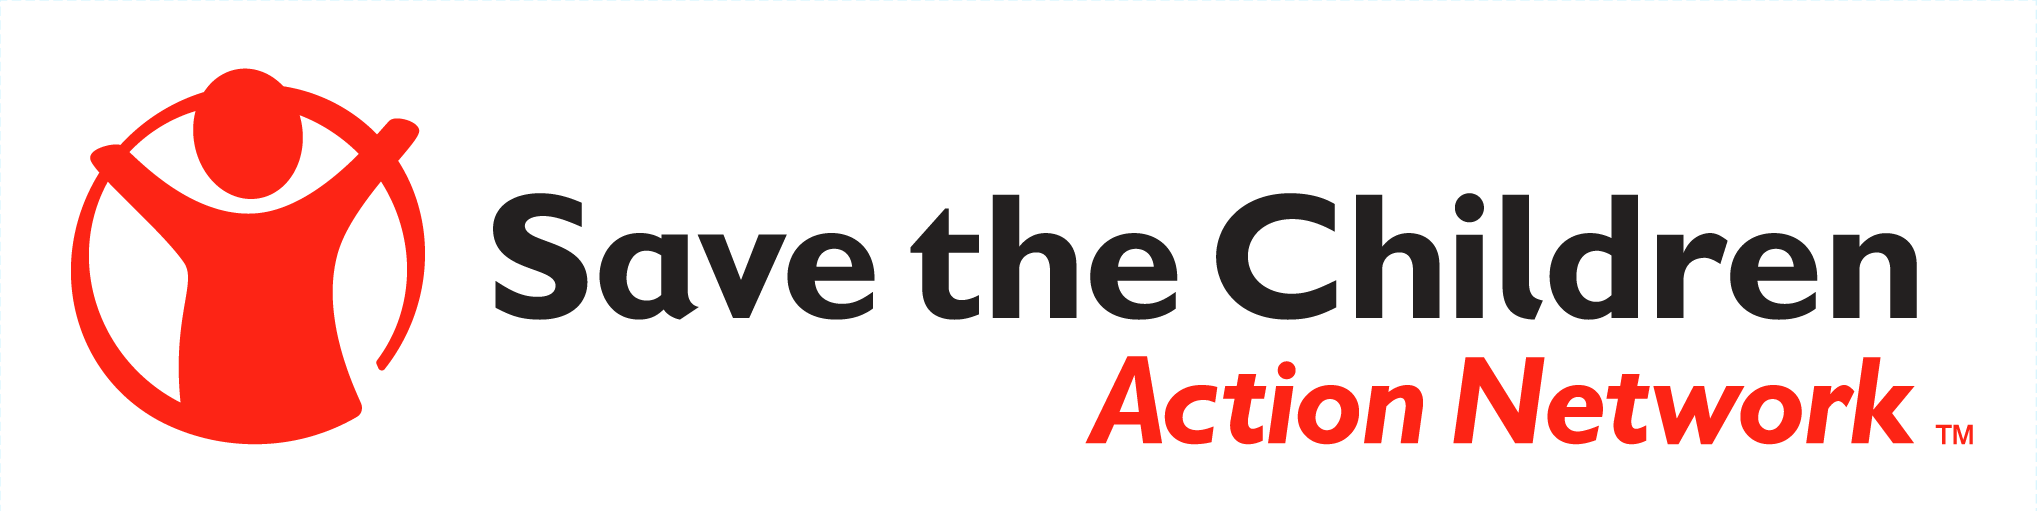 Save the Children Action Network